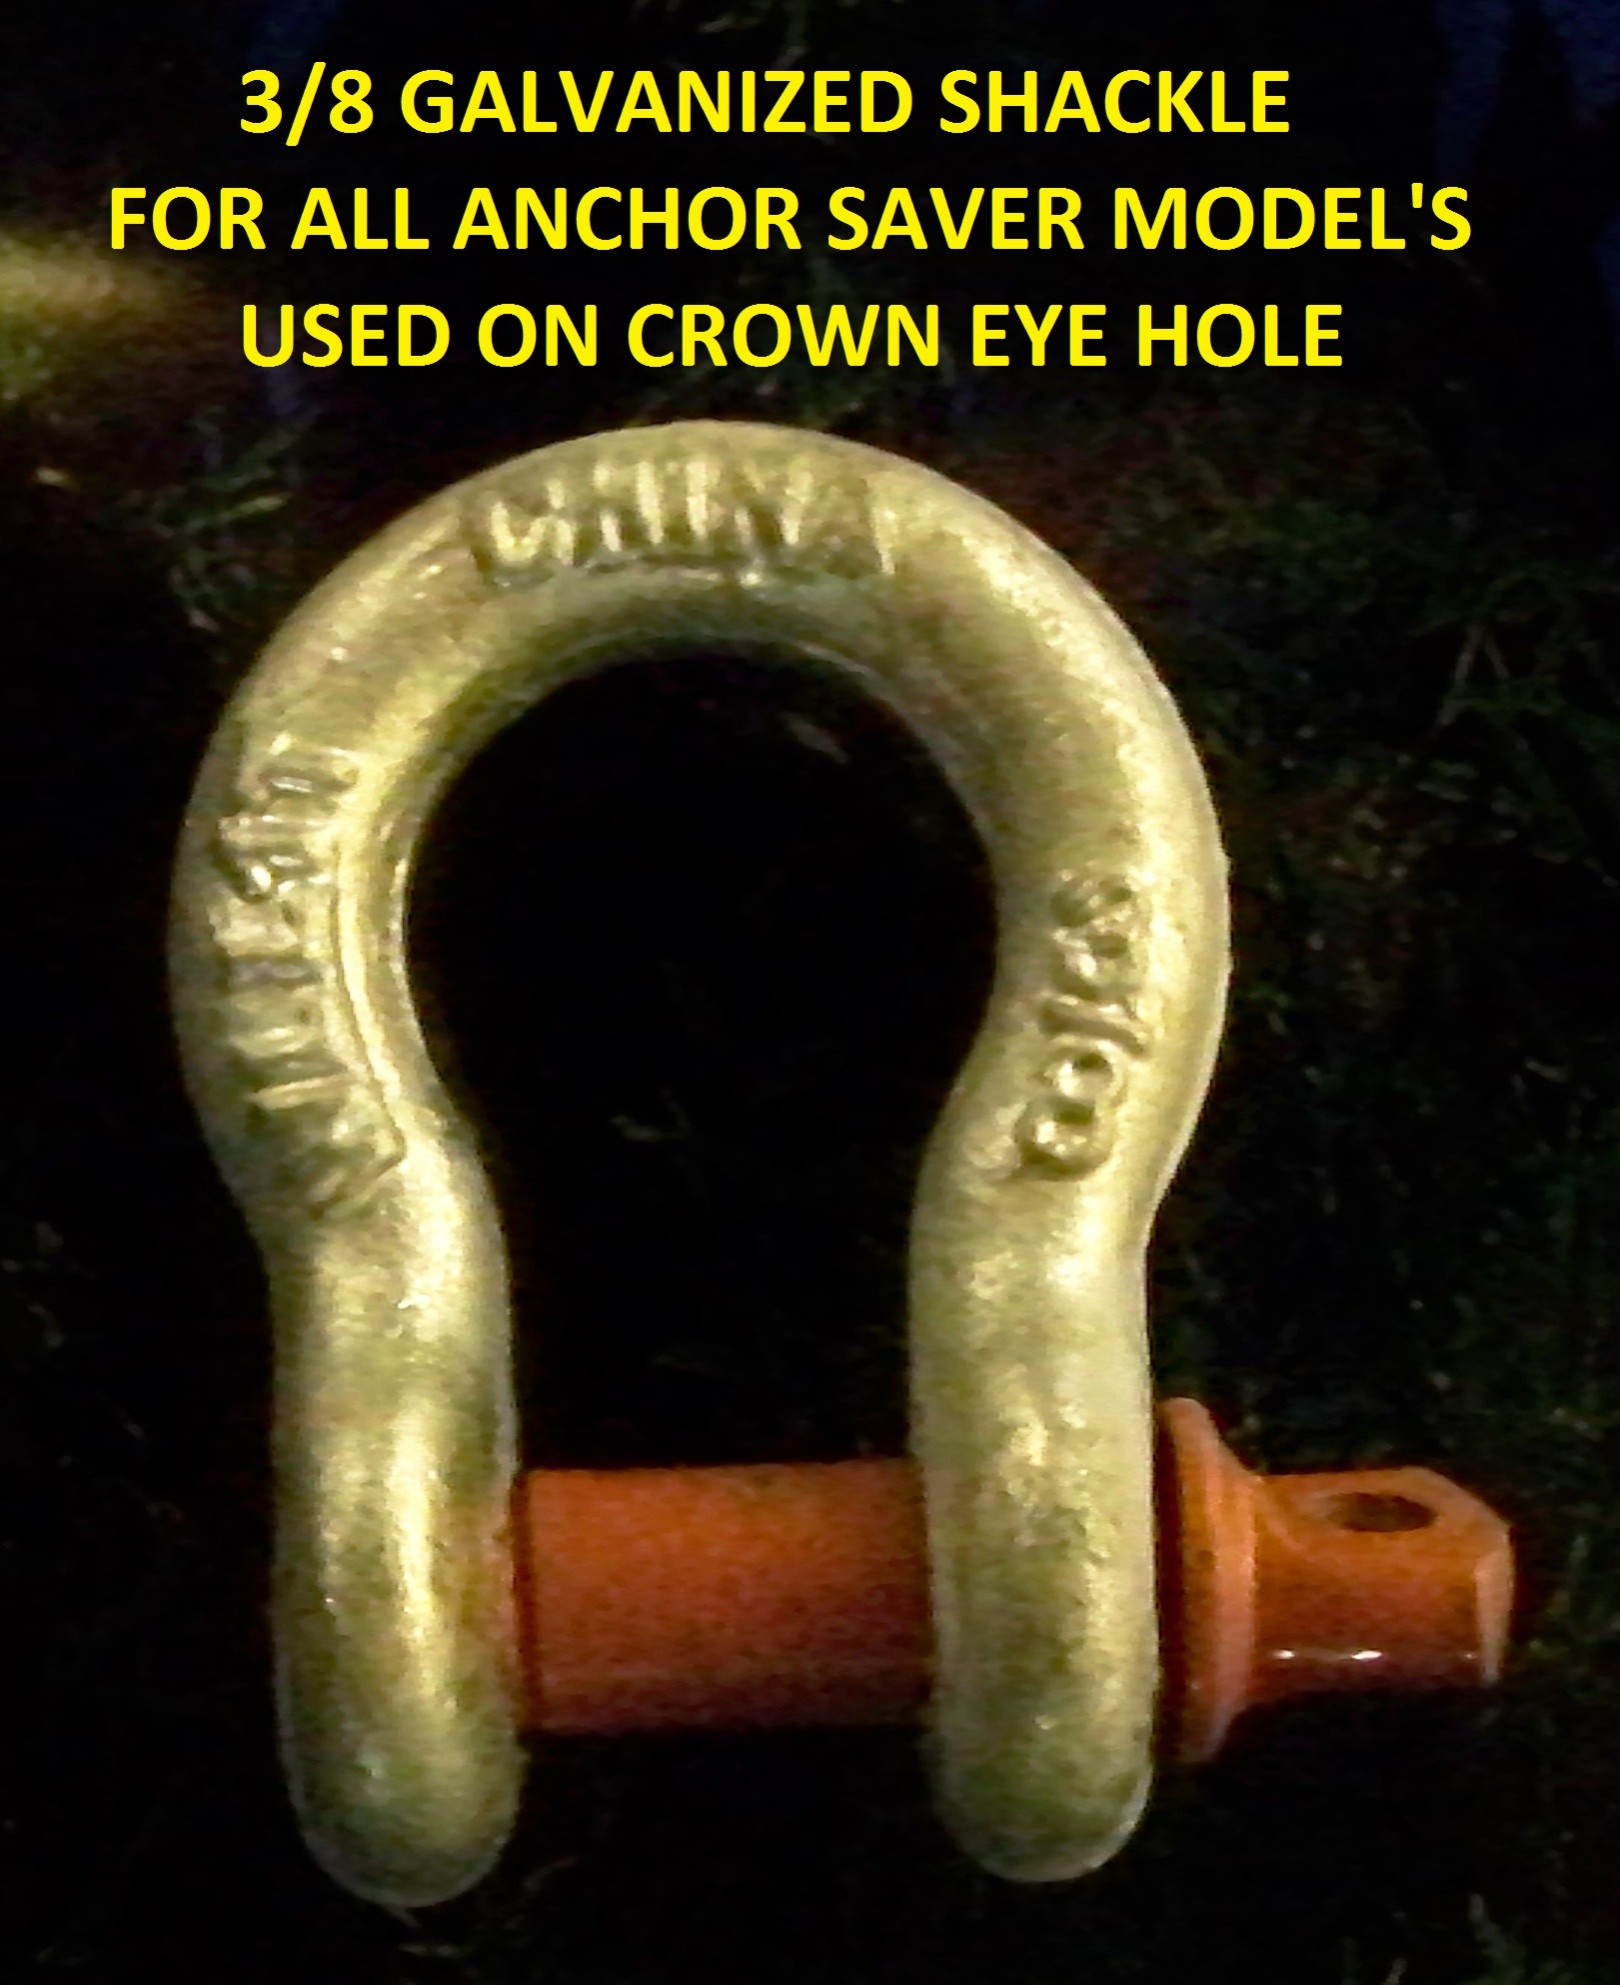 3/8 Galvanized crown eye shackle